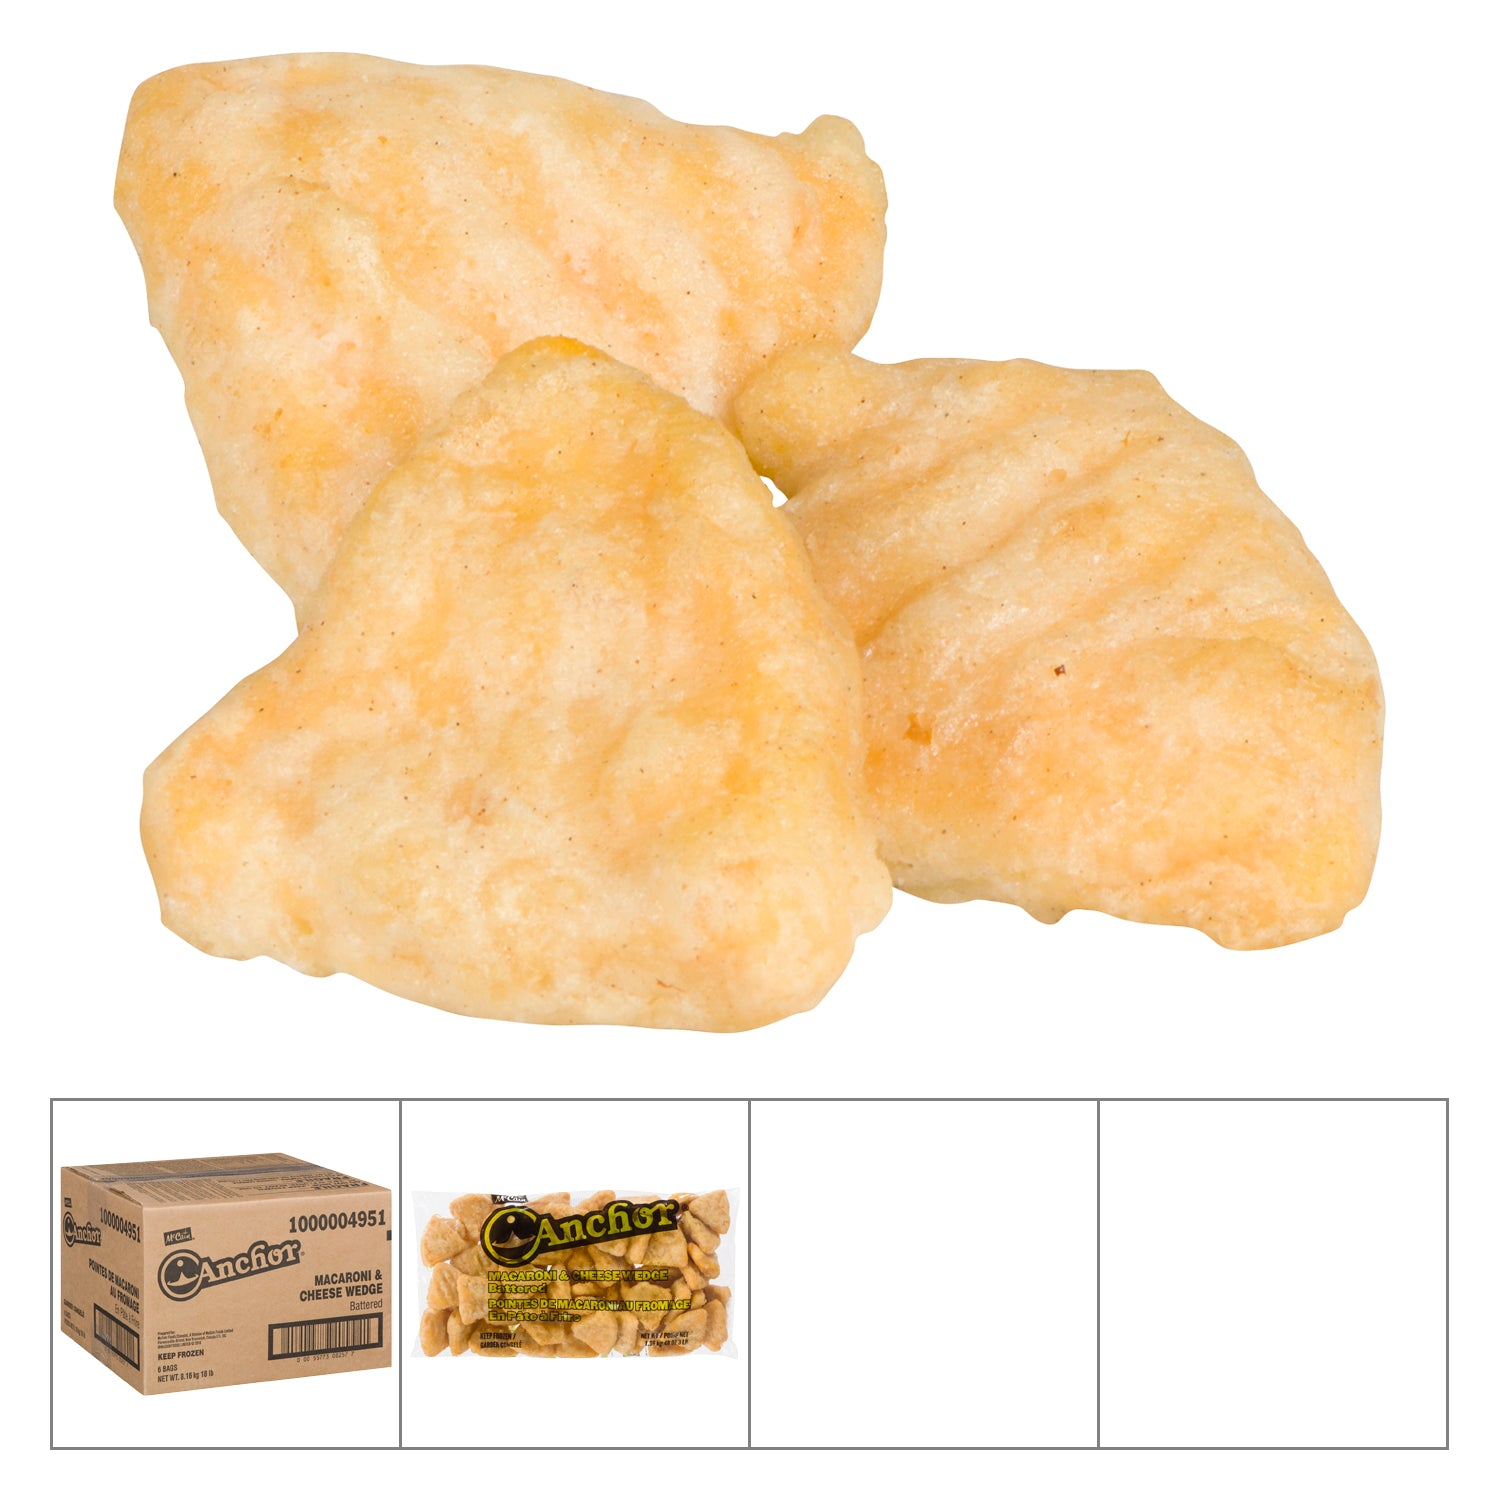 Anchor Frozen Macaroni and Cheese Stuffed Wedge Bites 3 lb - 6 Pack [$5.00/lb]